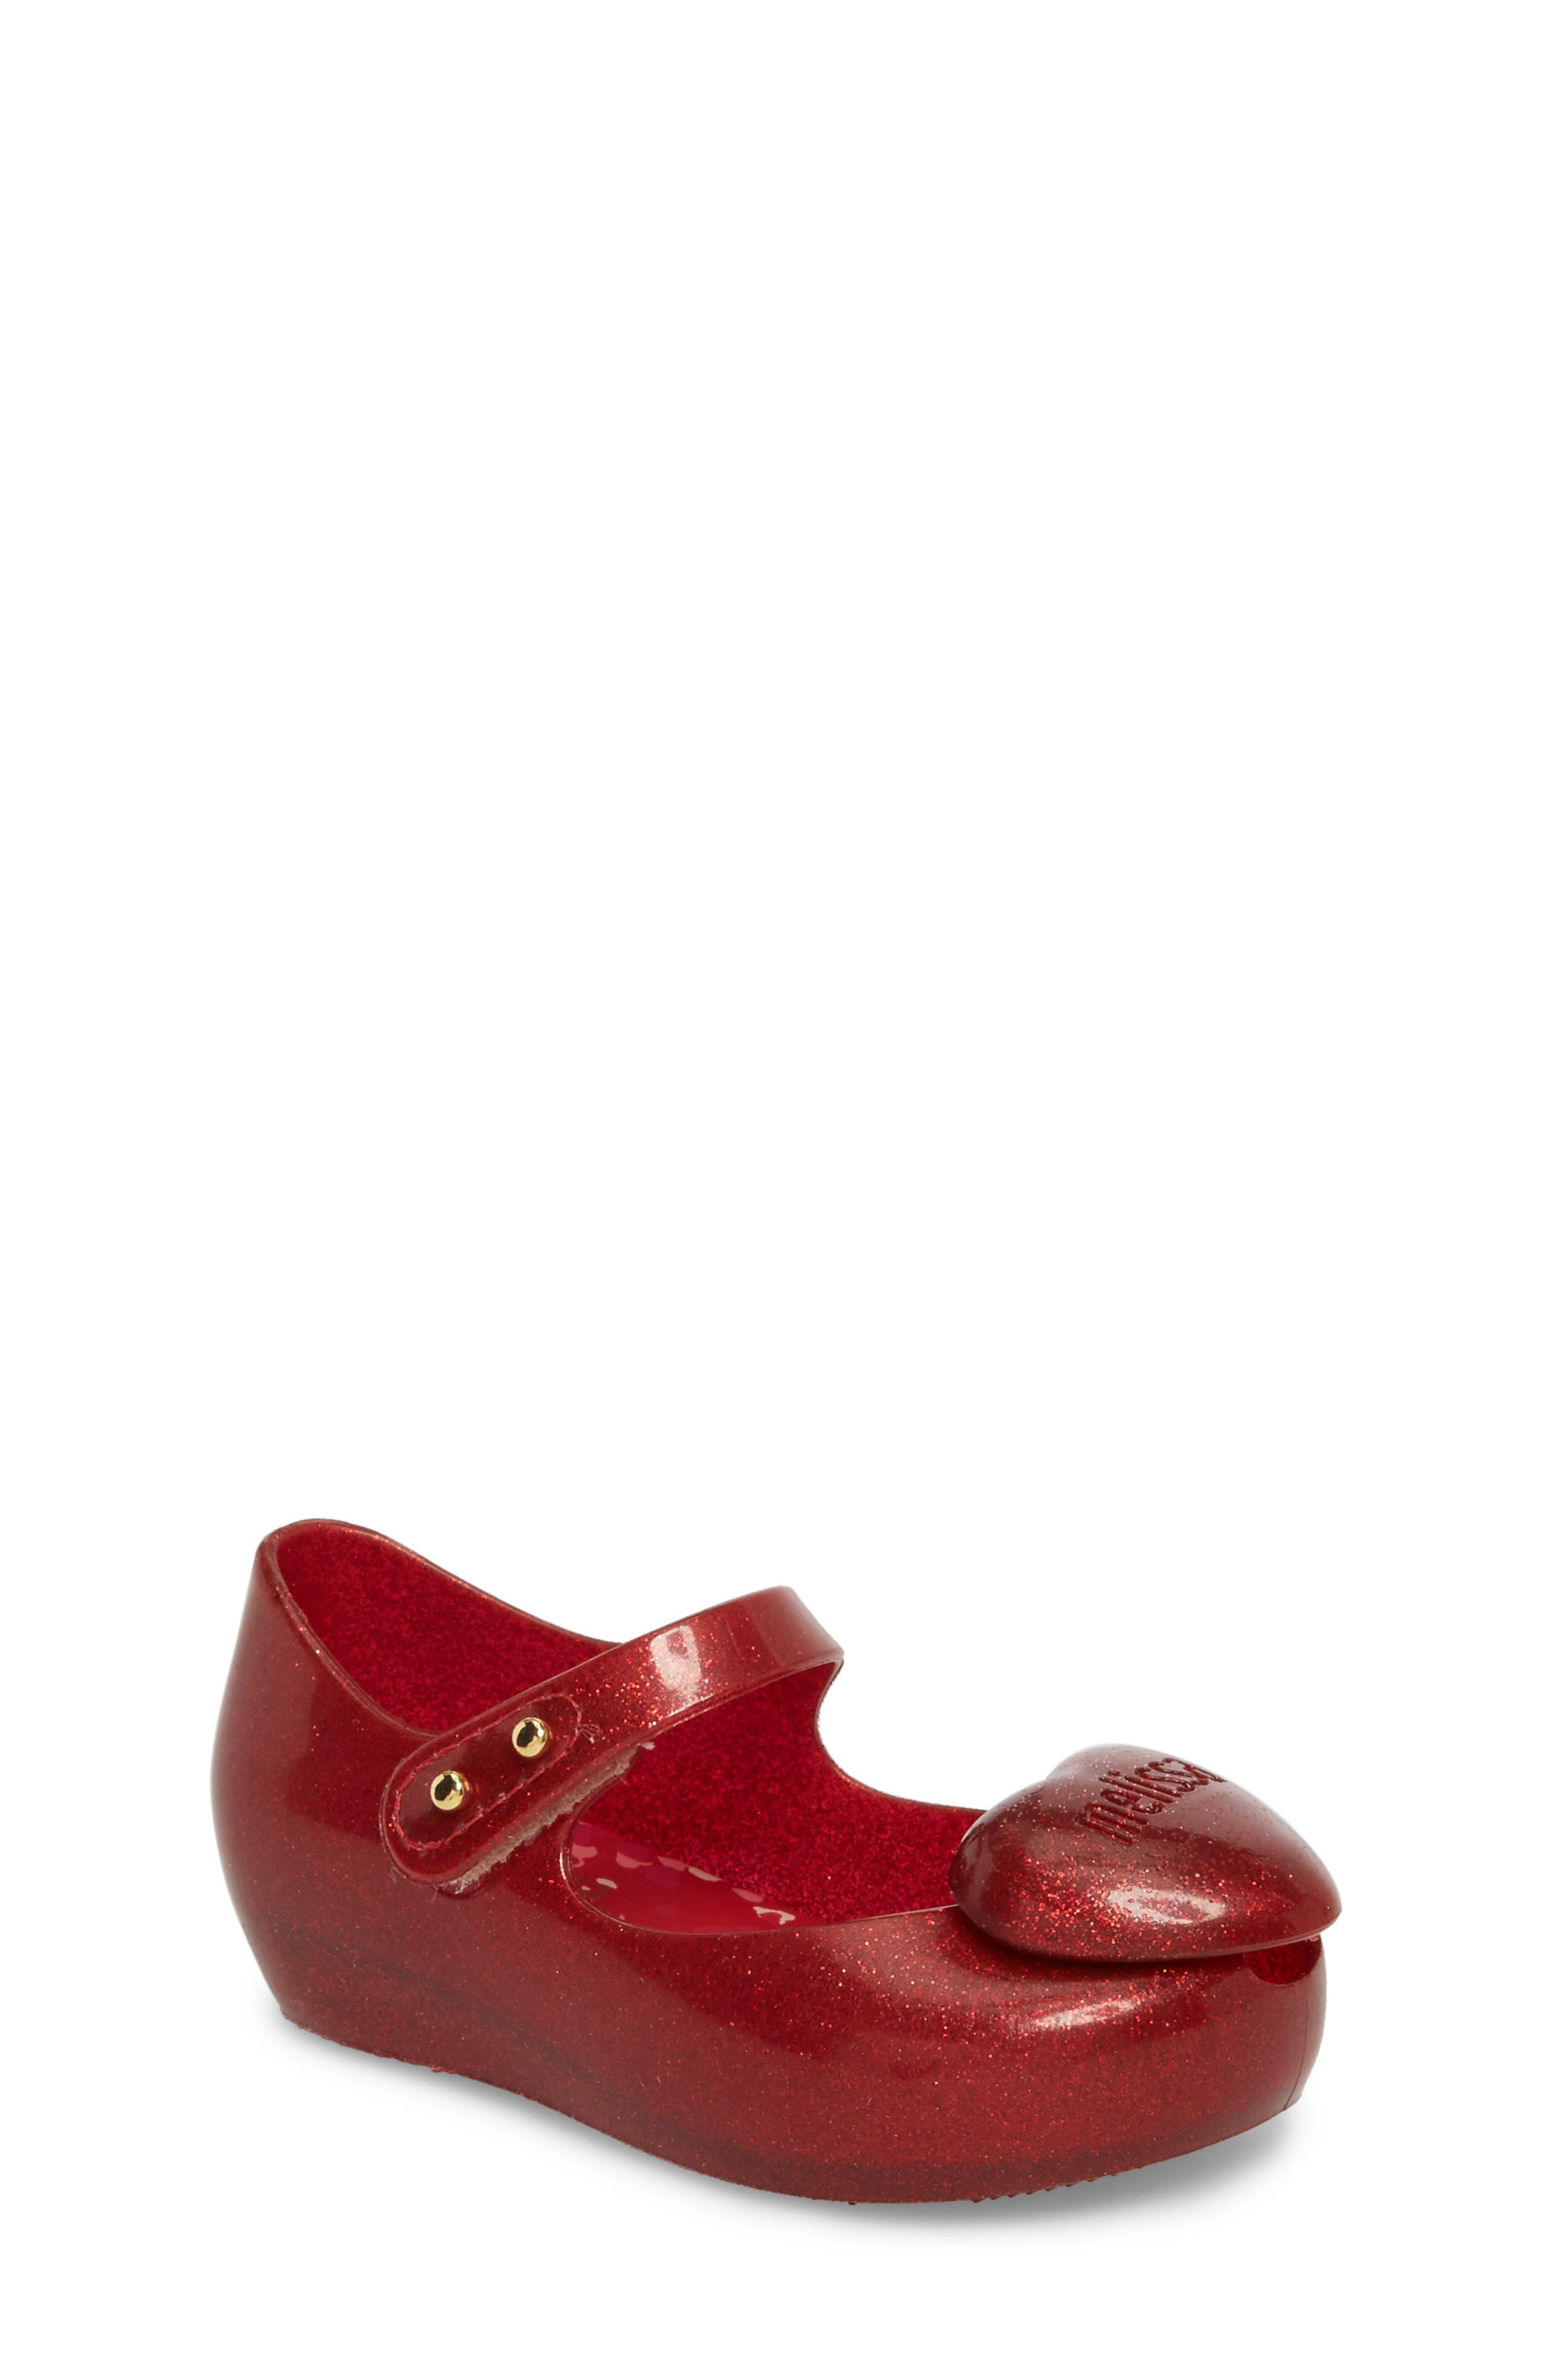 Ultragirl Heart Mary Jane Flat,                             Main thumbnail 1, color,                             Red Sparkle